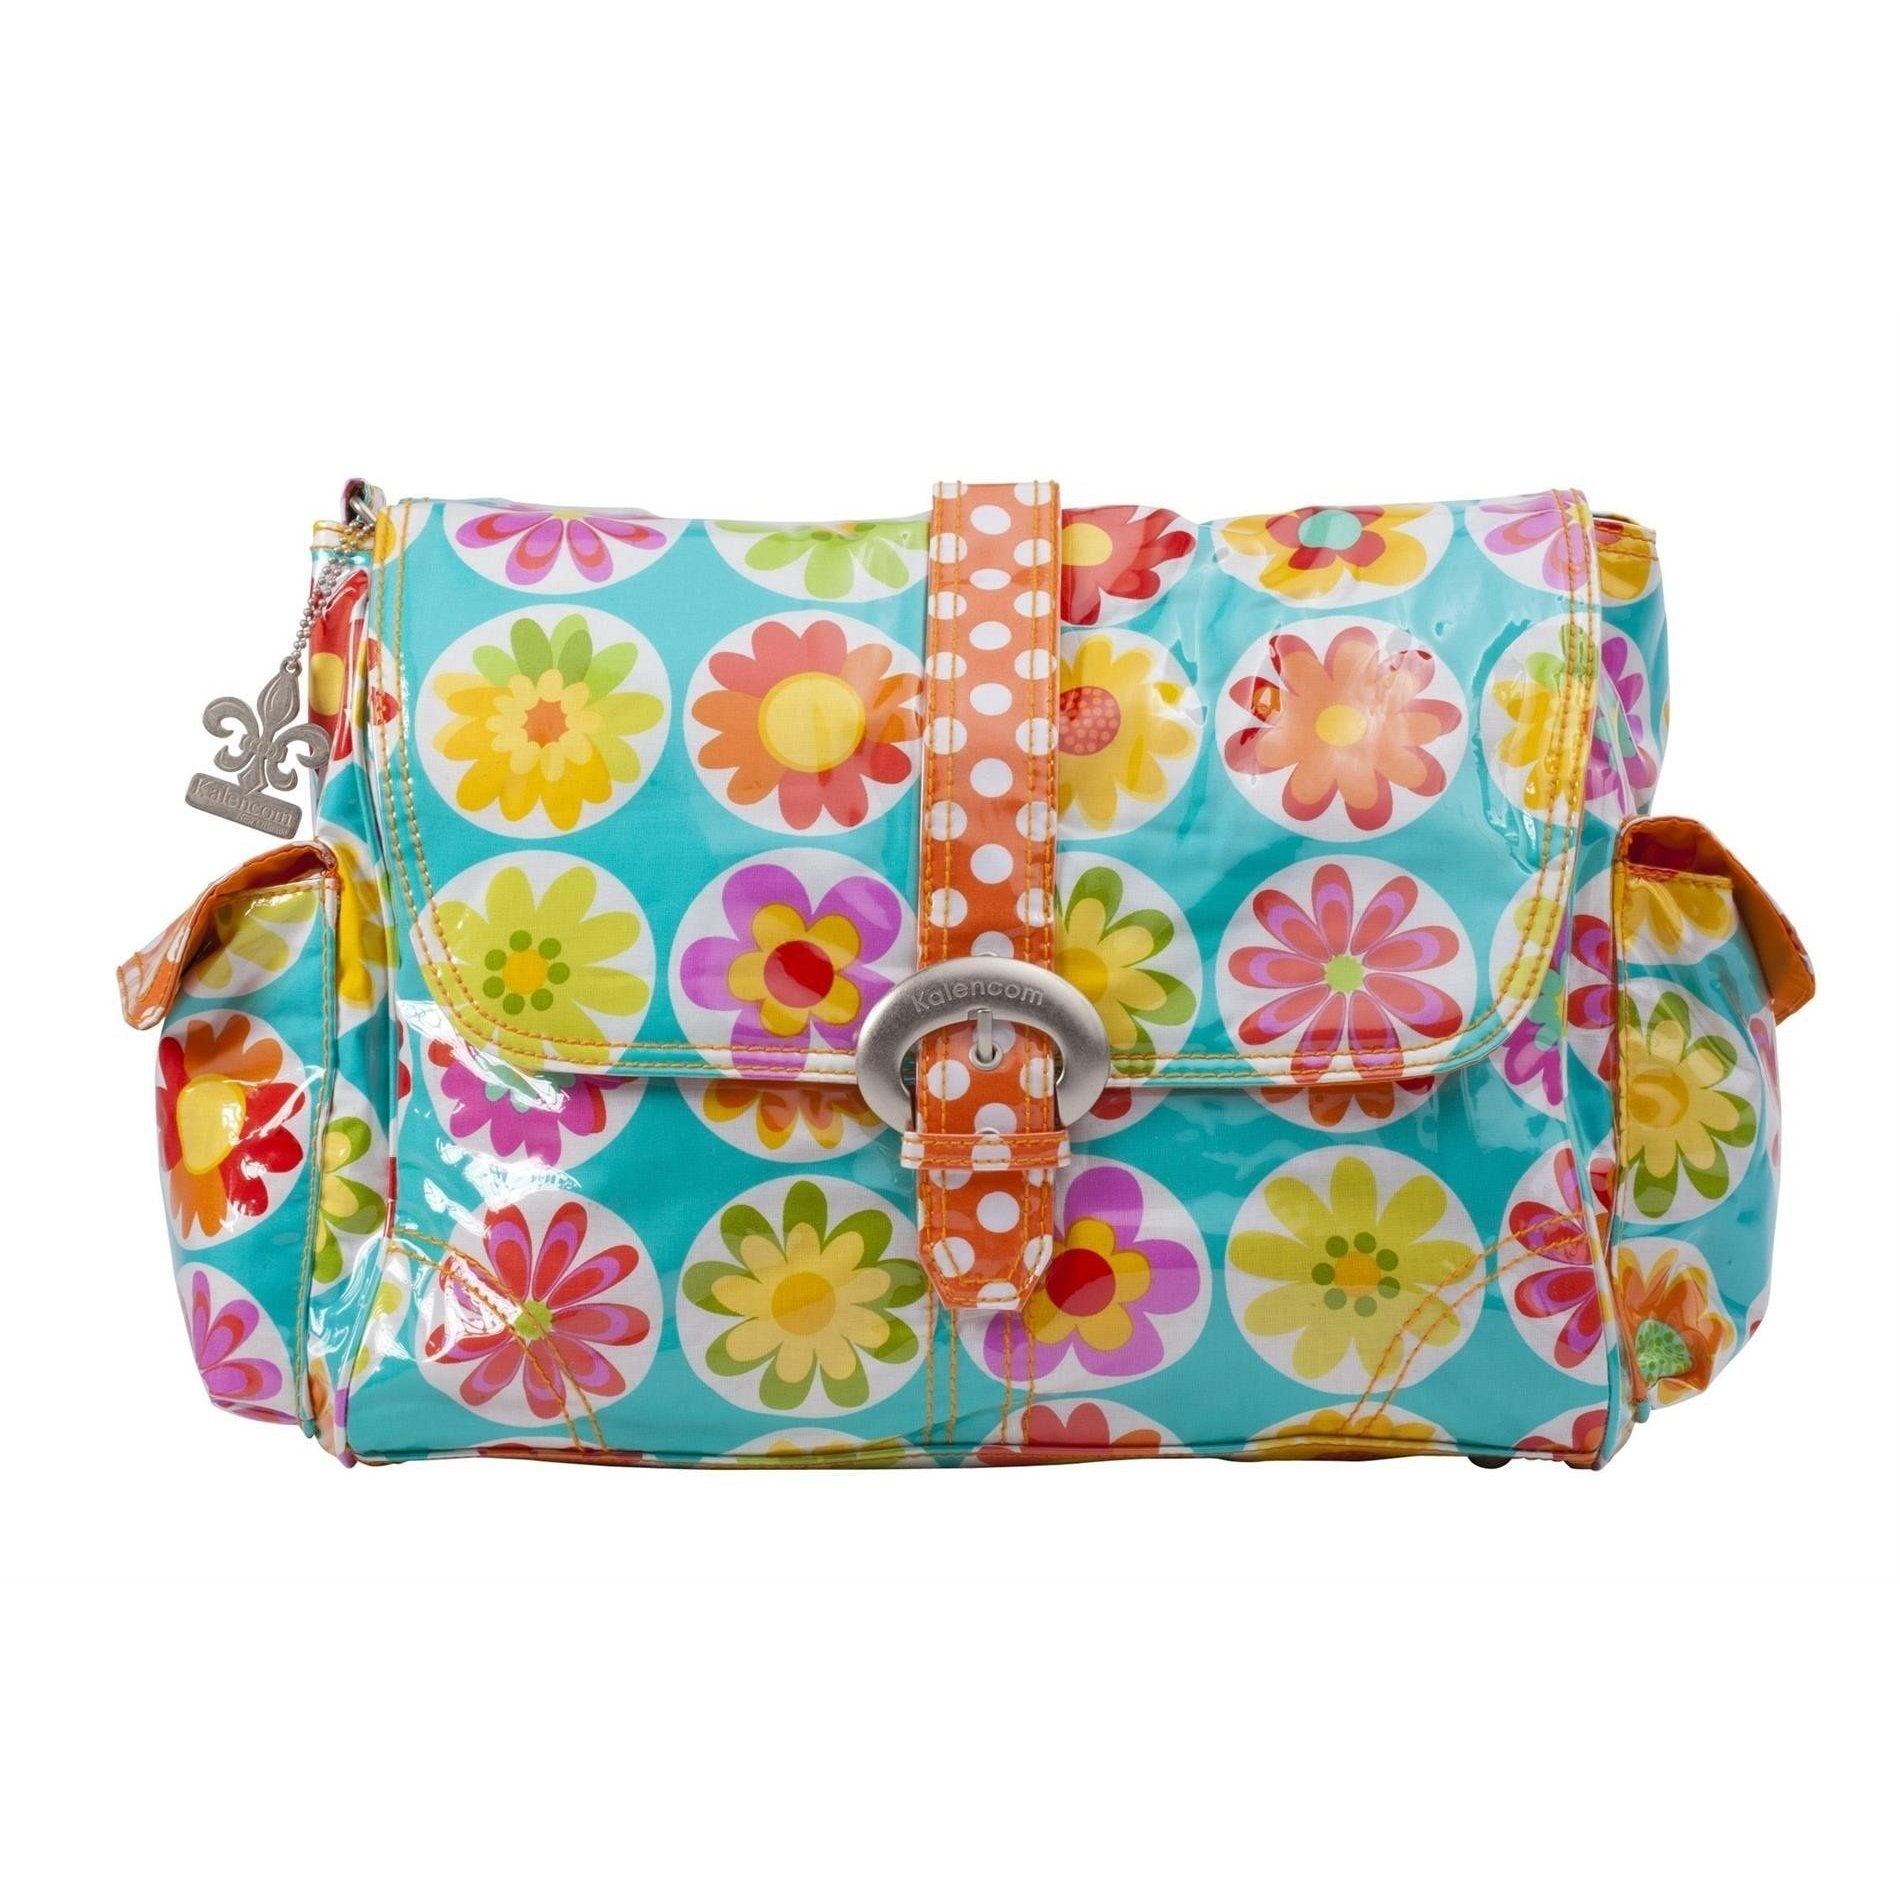 Big Daisy Laminated Buckle Diaper Bag | Style 2960 - Kalencom-Diaper Bags-Jack and Jill Boutique